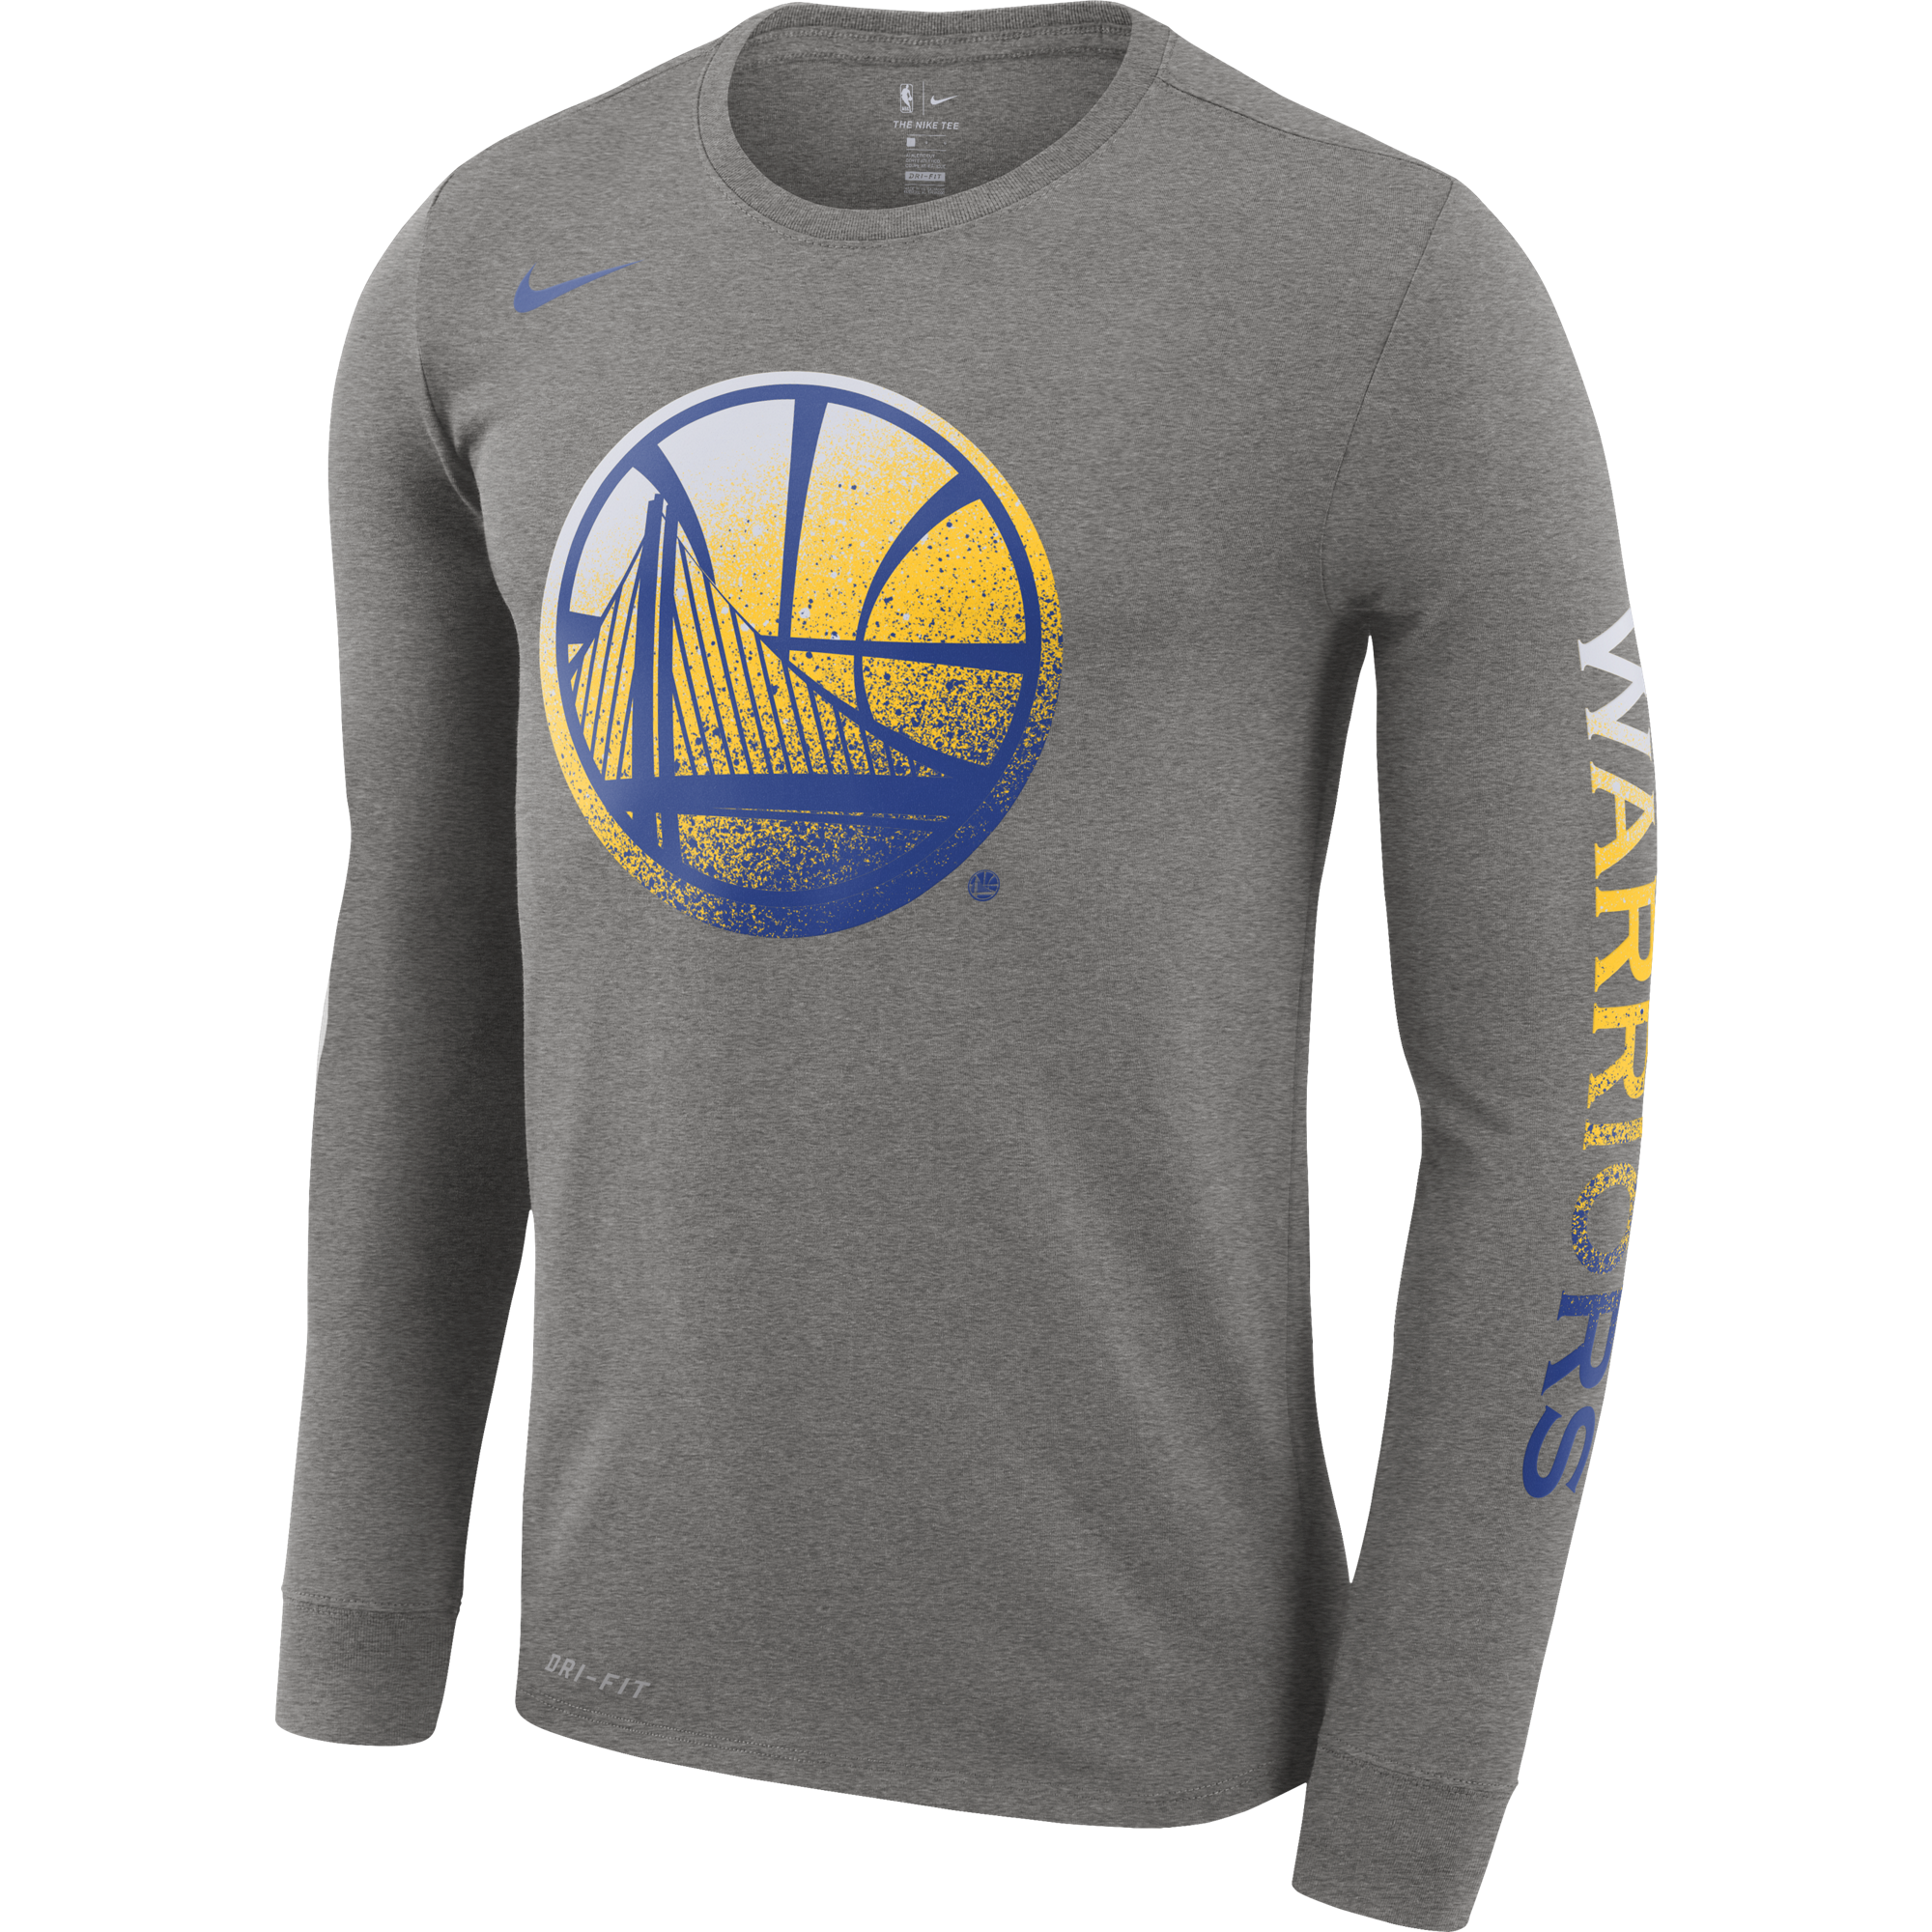 ddb069cb9b NIKE NBA GOLDEN STATE WARRIORS DRY TEE for £35.00